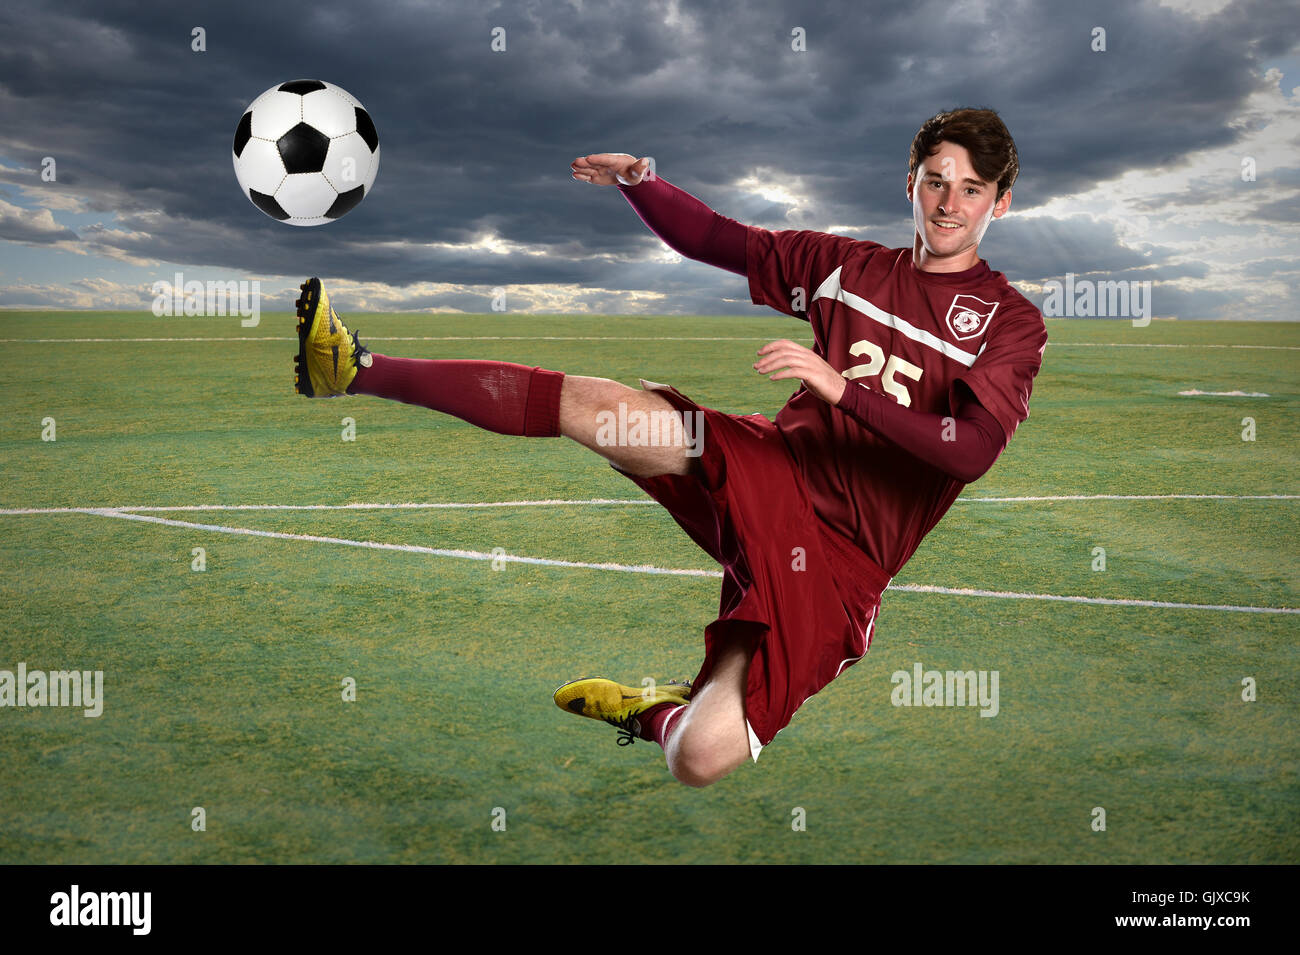 Young soccer player kicking ball while jumping - Stock Image